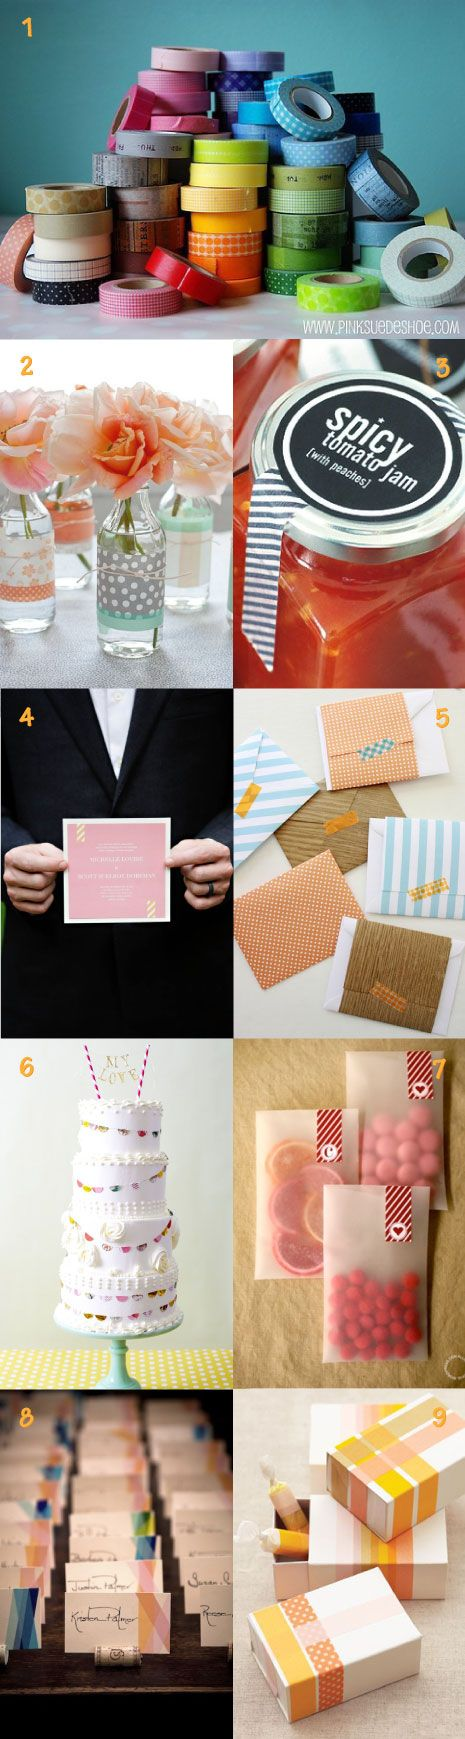 #washi tape inspiration for wedding and party decor - #diy #cutetape